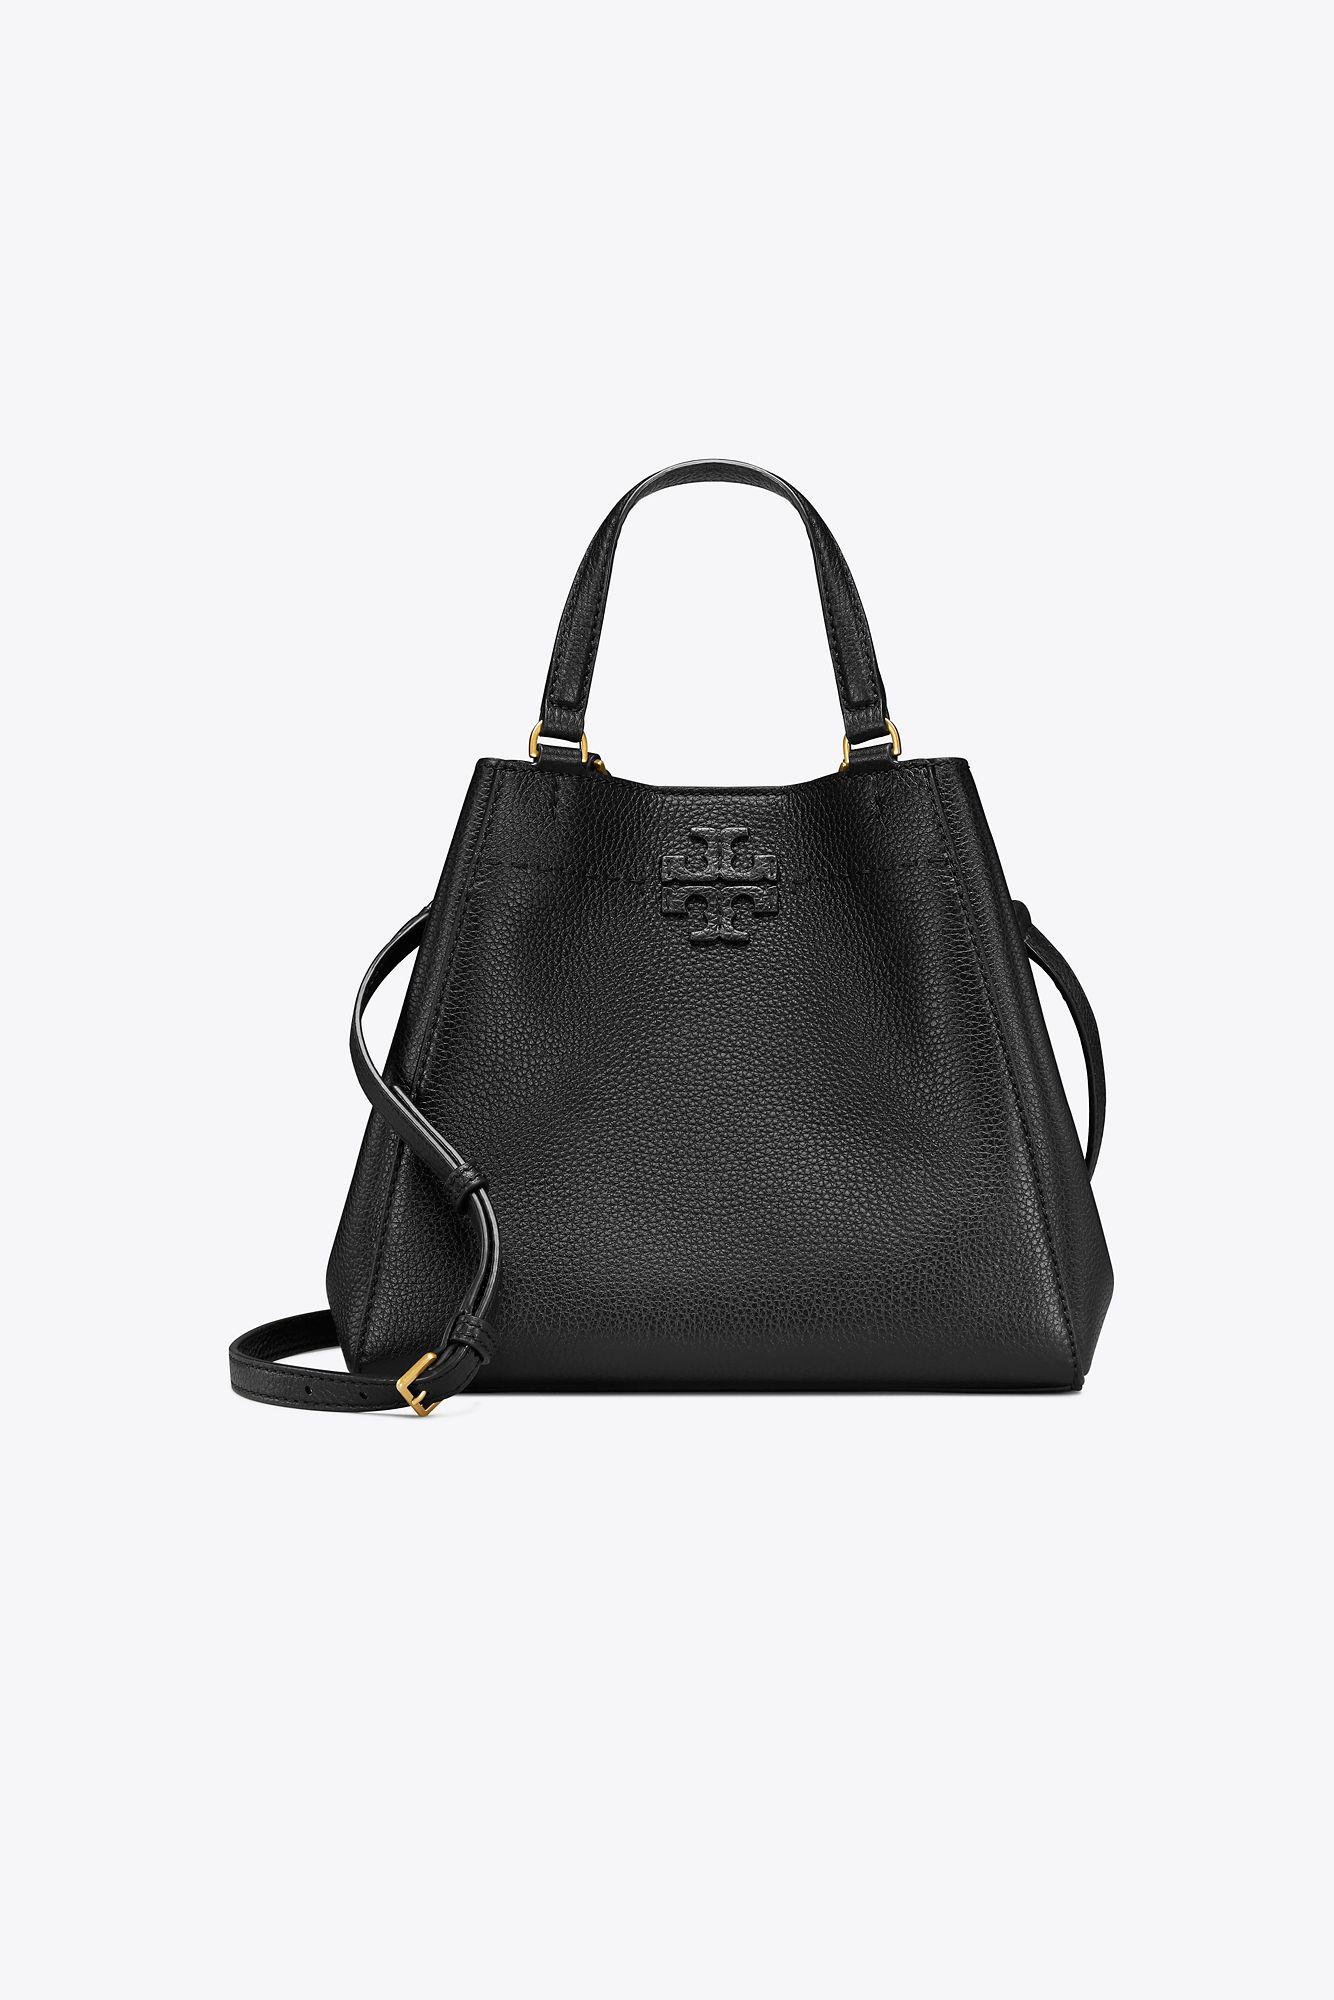 db6925461db0 Lyst - Tory Burch Mcgraw Small Carryall in Black